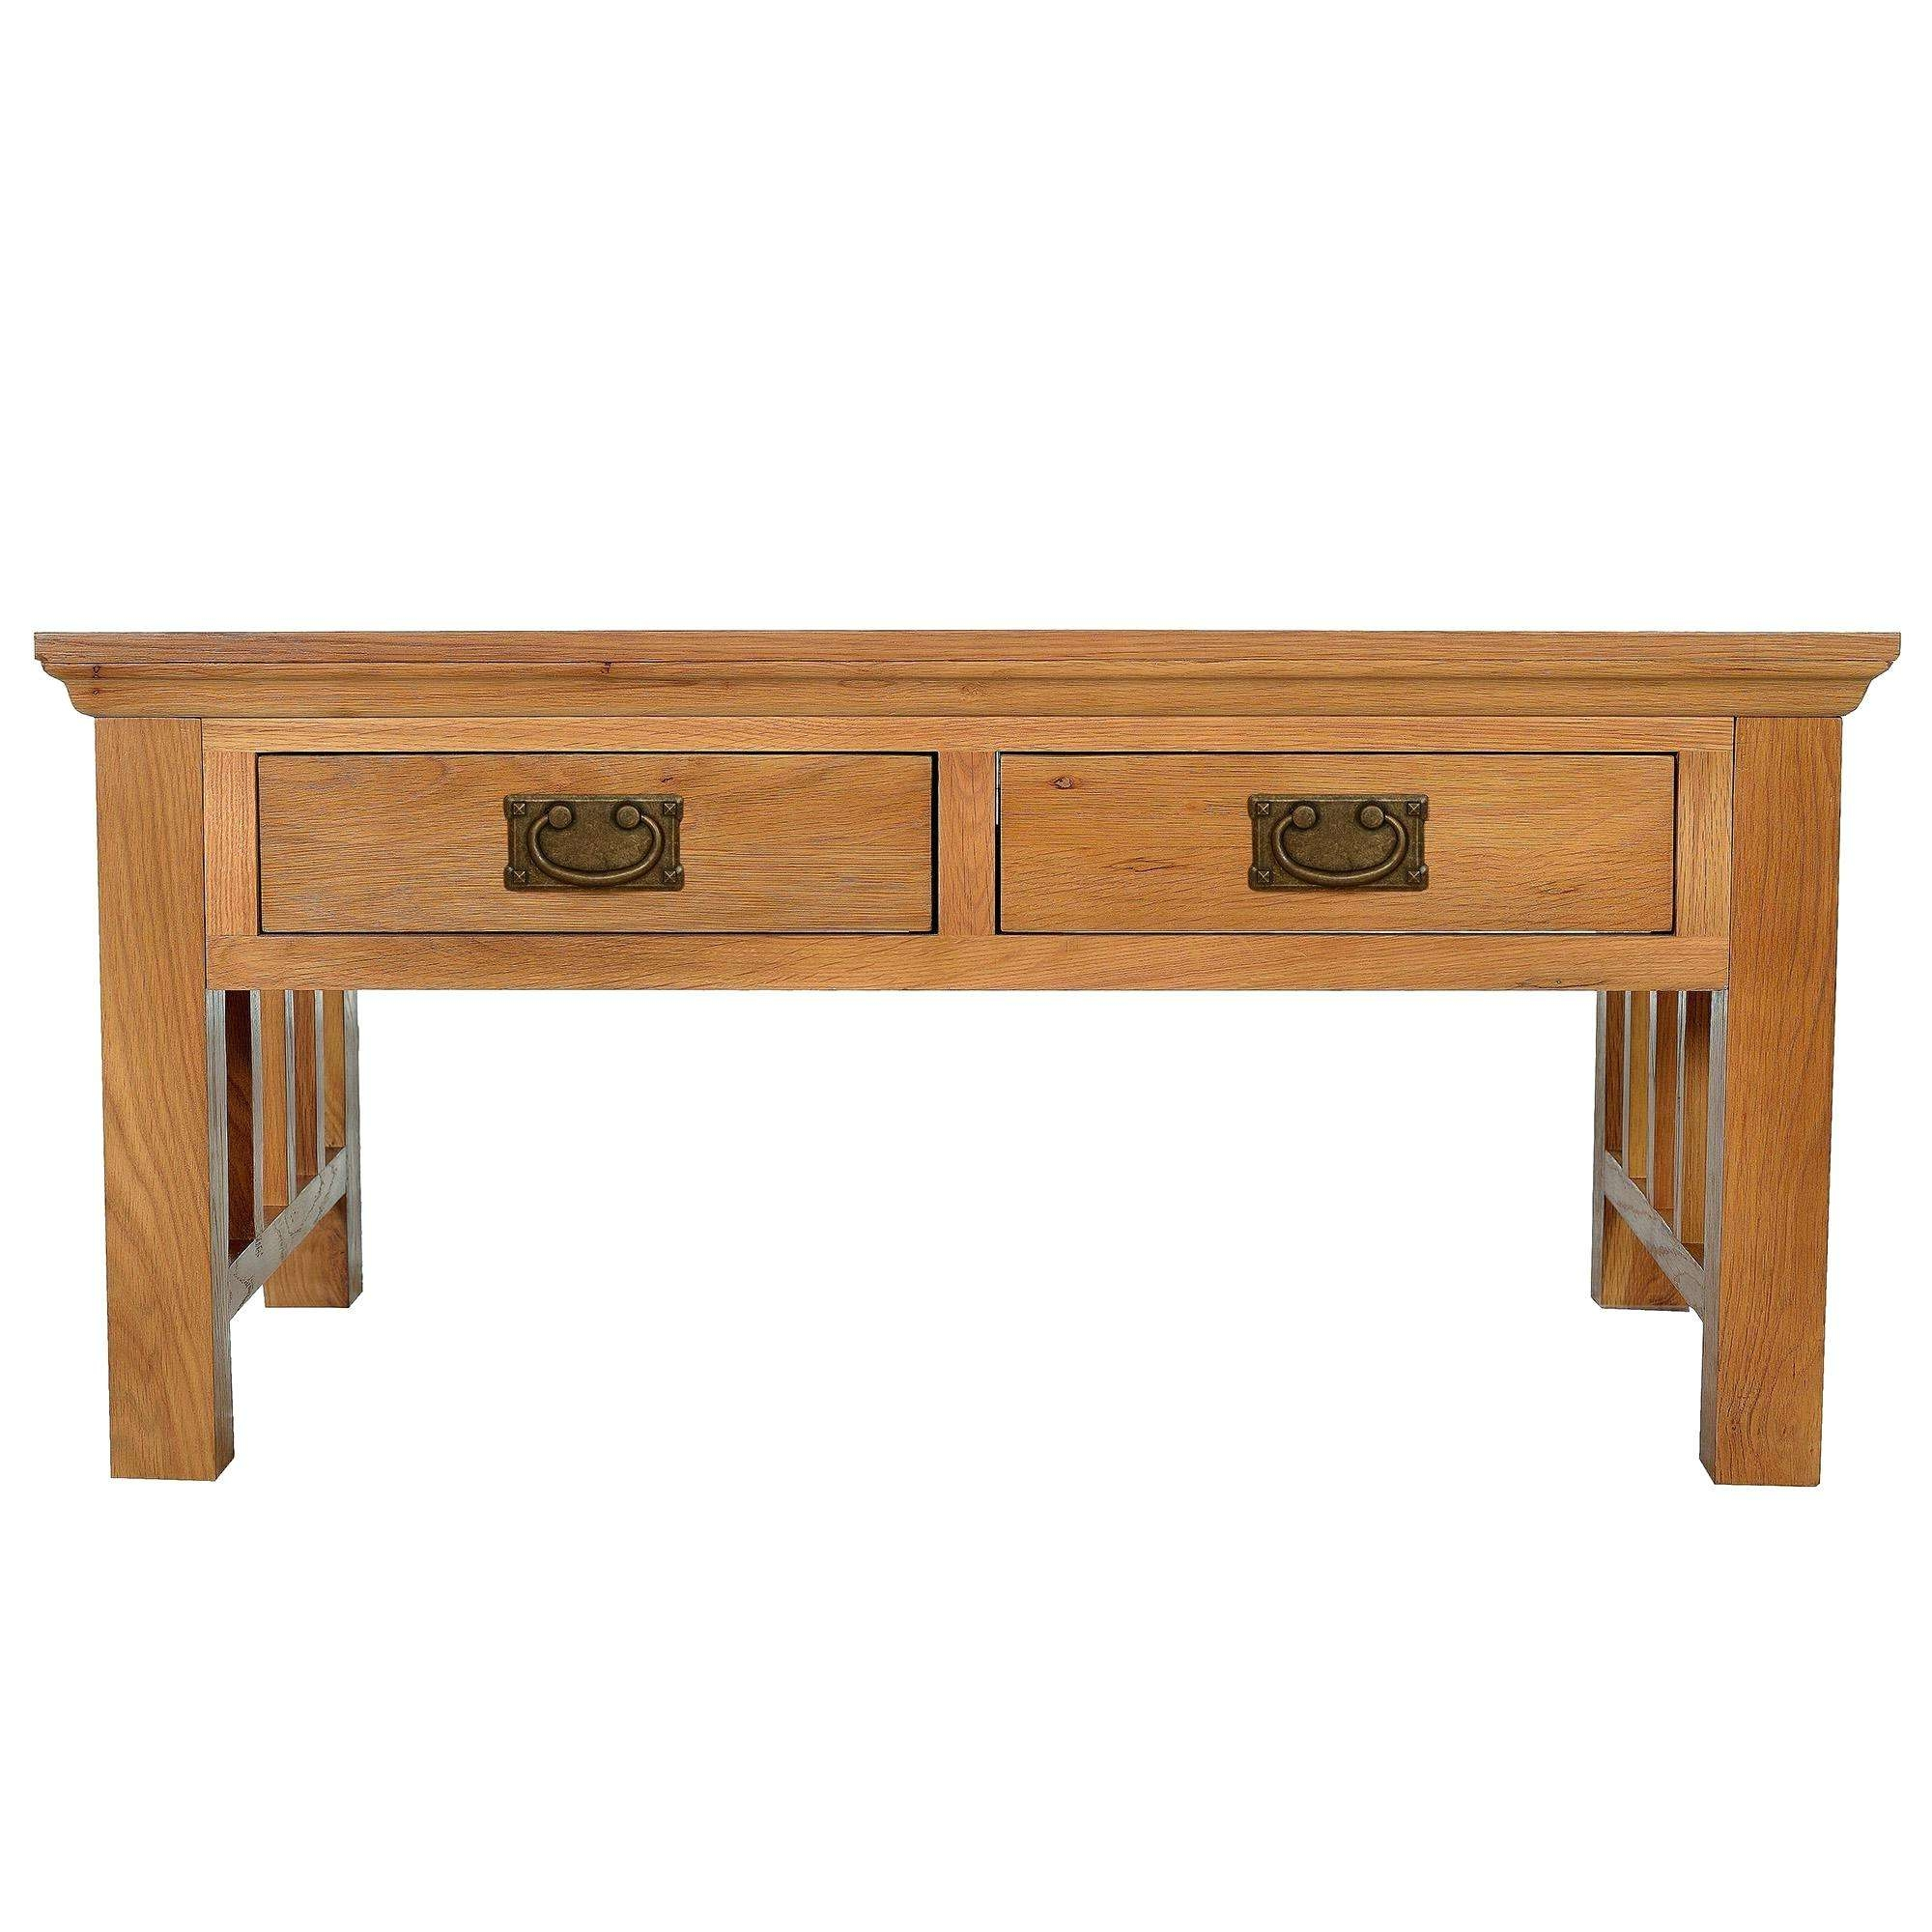 Small Oak Coffee Table S Small Oak Coffee Table With Shelf Regarding Best And Newest Small Oak Coffee Tables (View 20 of 20)